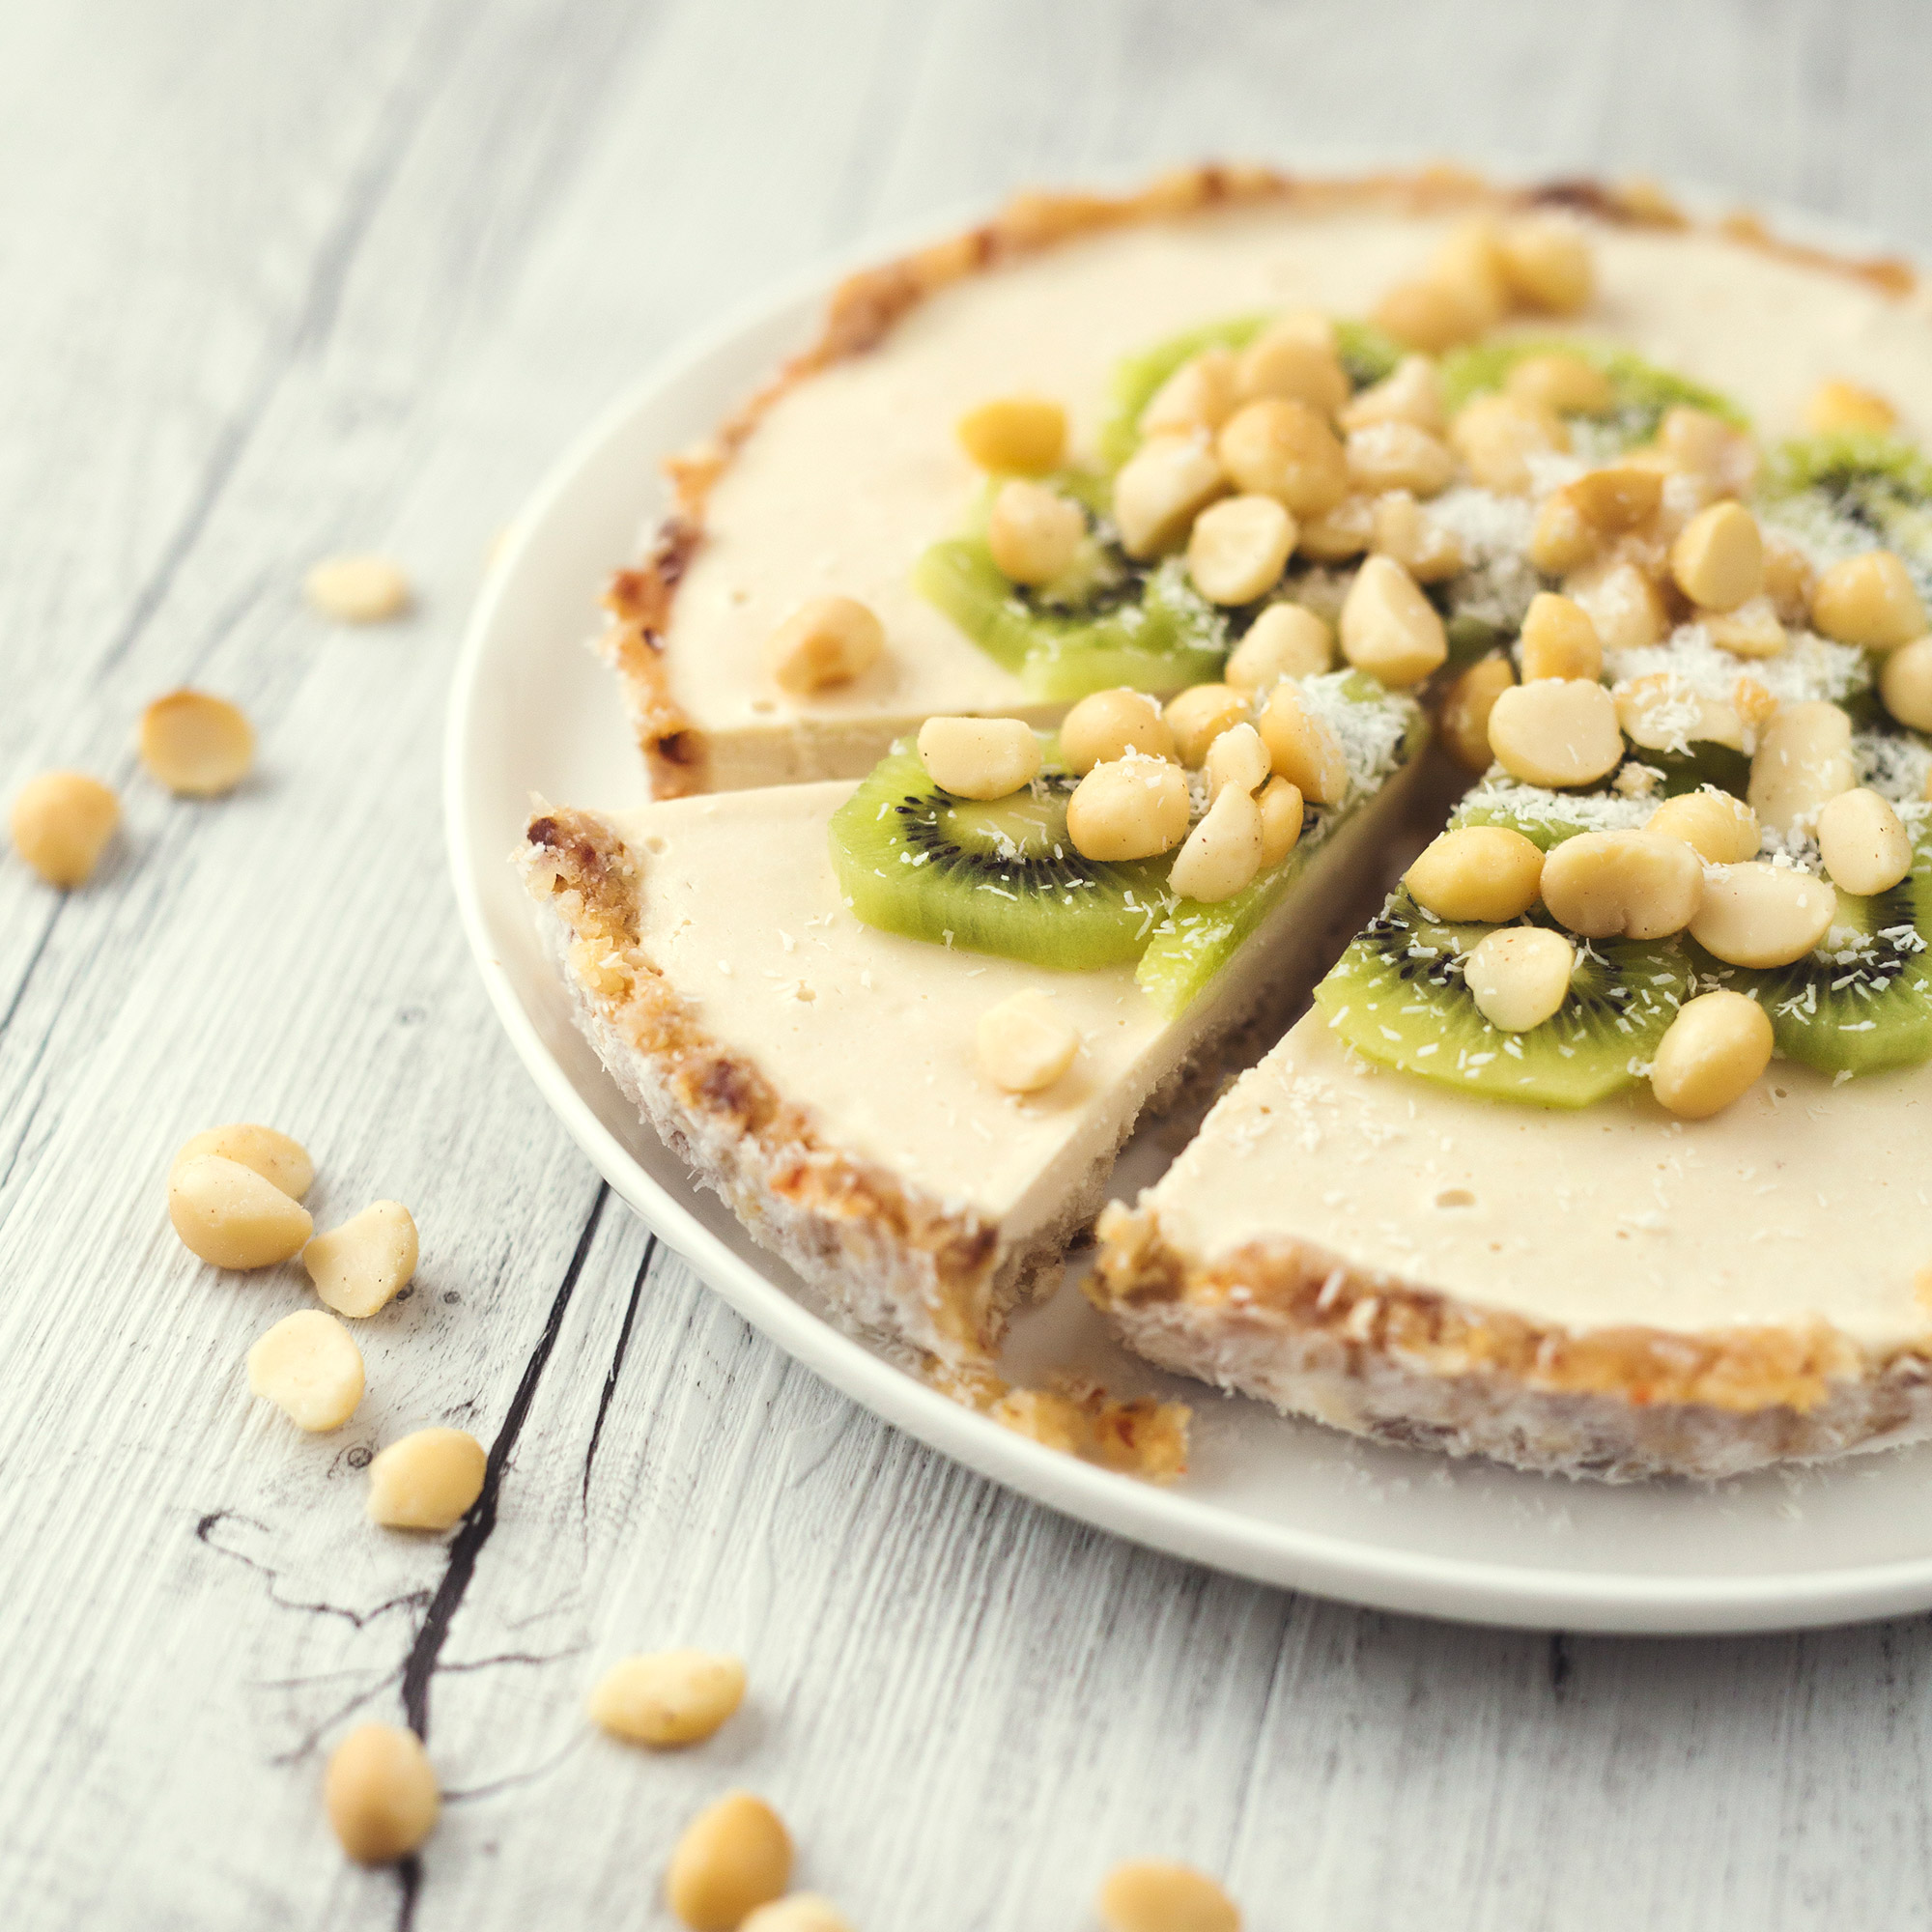 Summer Kiwi and Macadamia Raw Vegan Tart